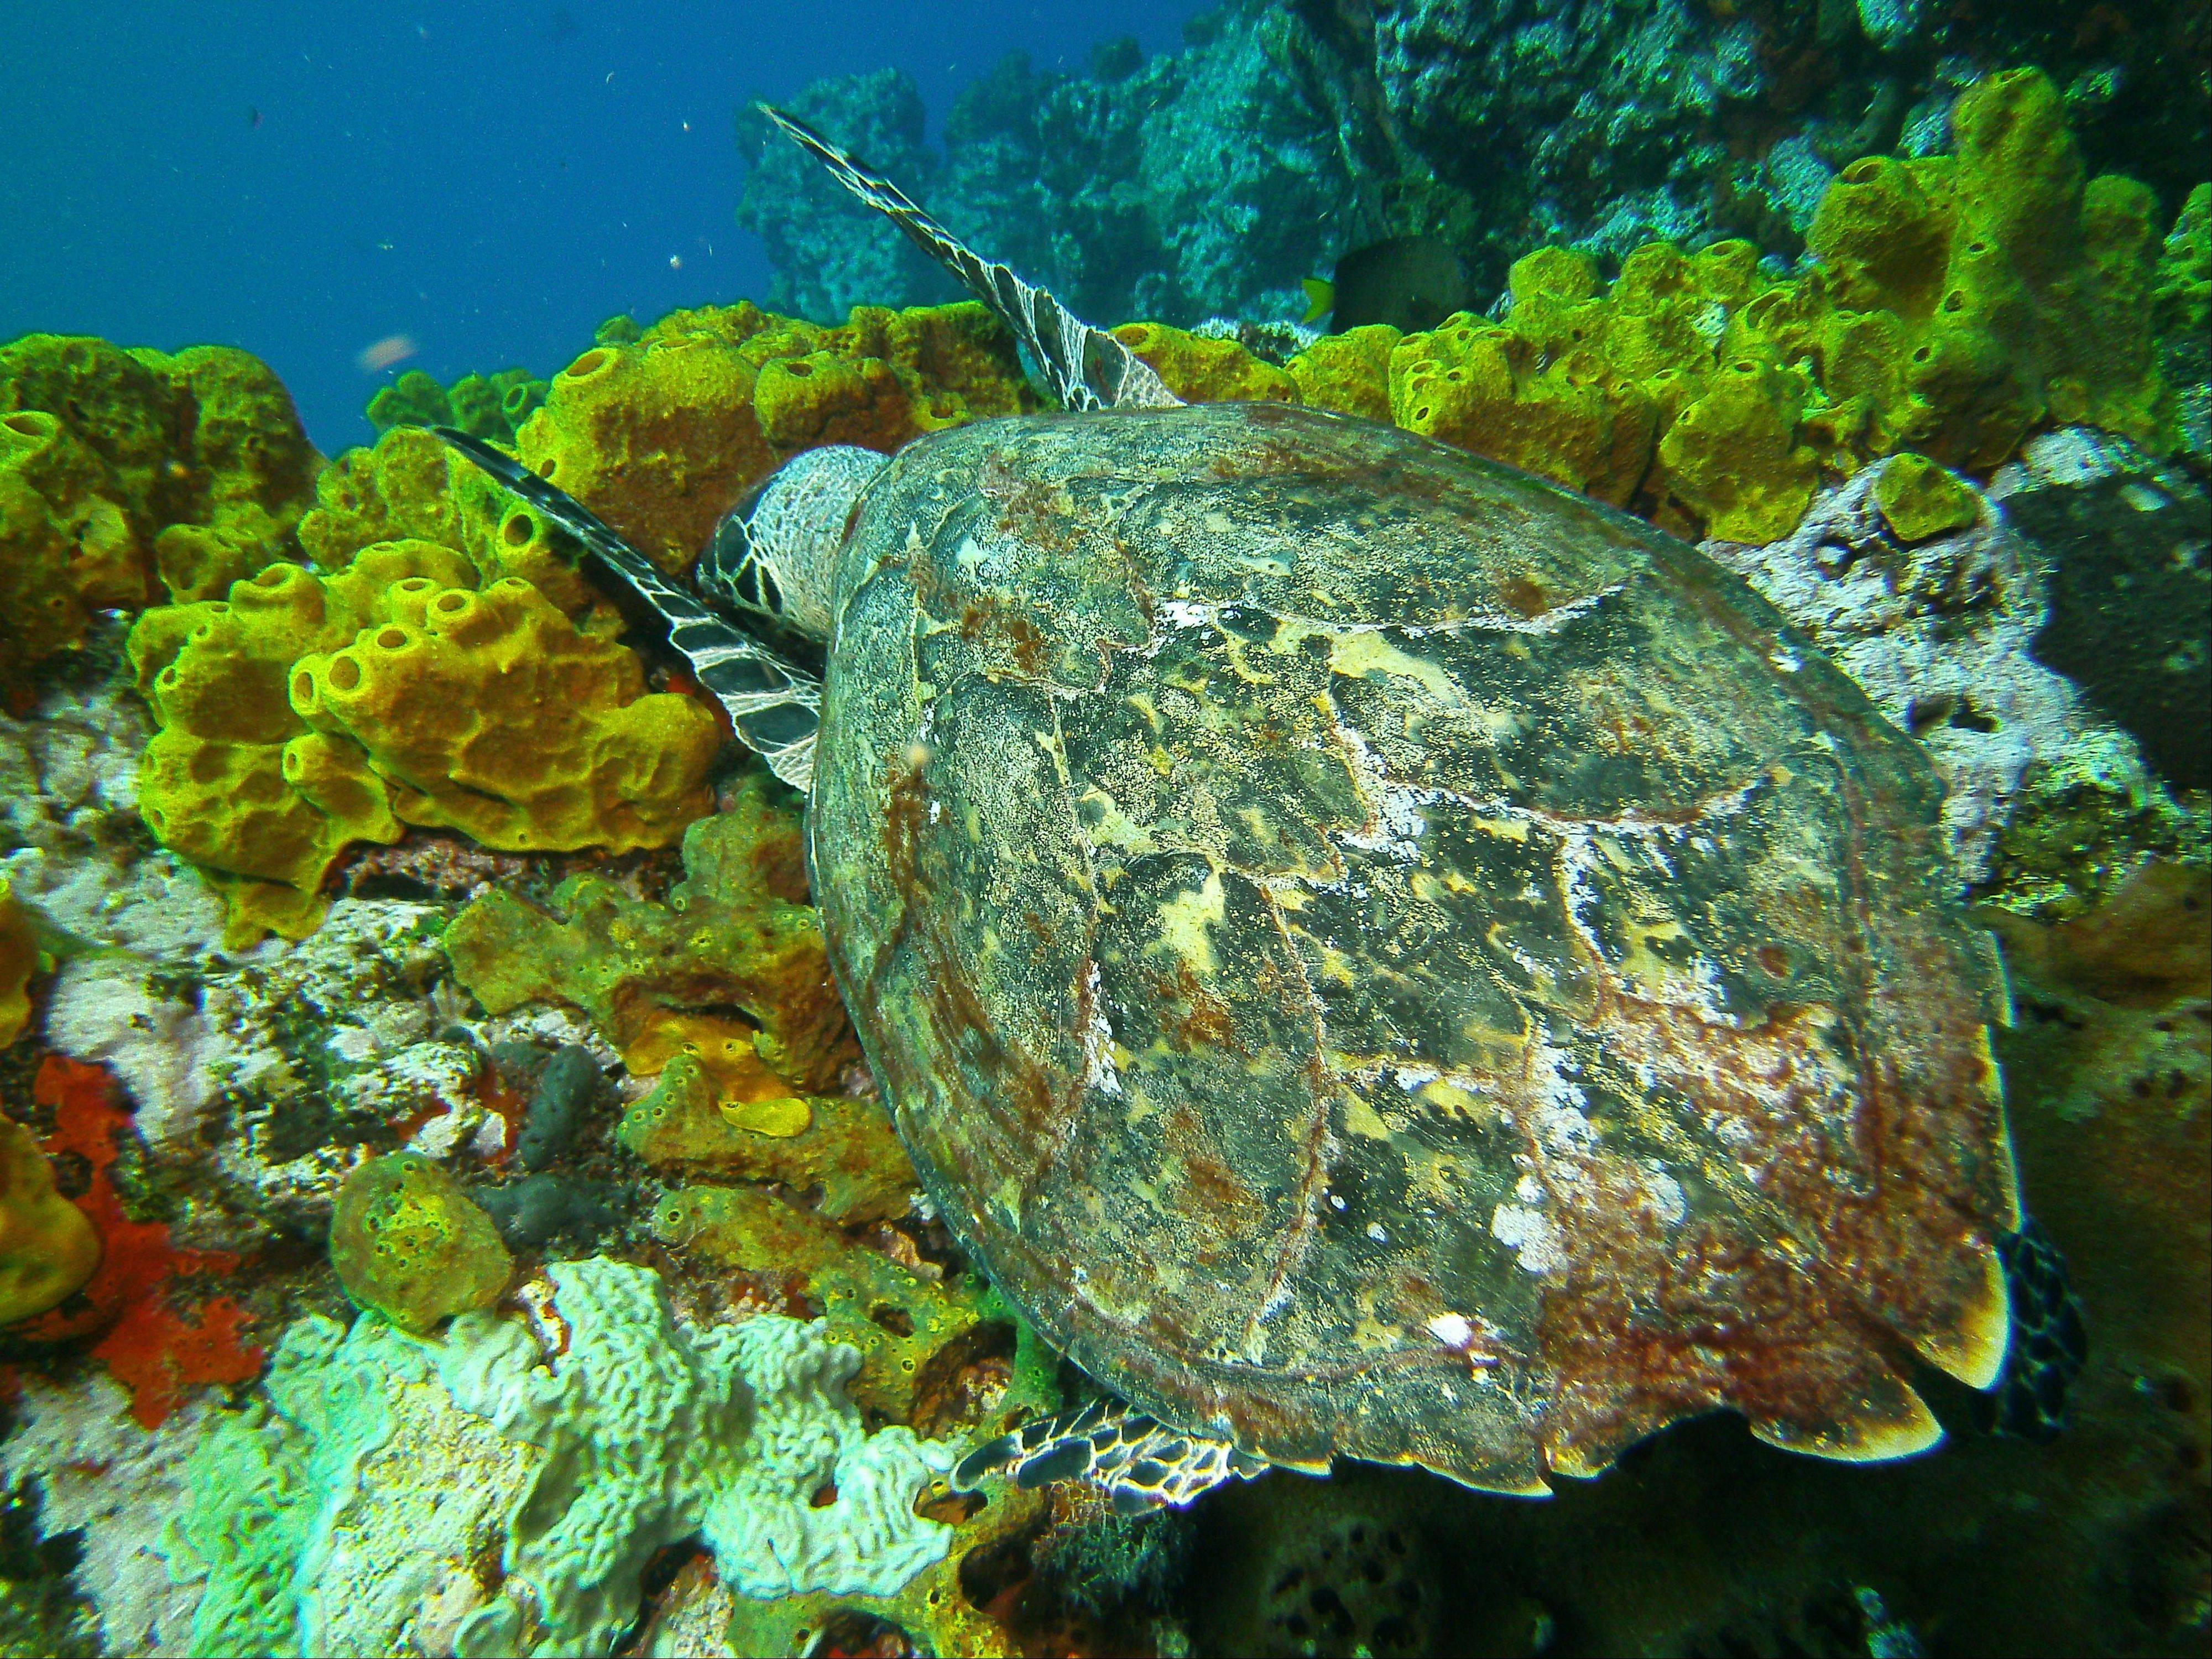 A hawksbill sea turtle snags lunch at the Man-Of-War Shoals dive site in the Saba Marine Park in Saba, an island in the Caribbean.